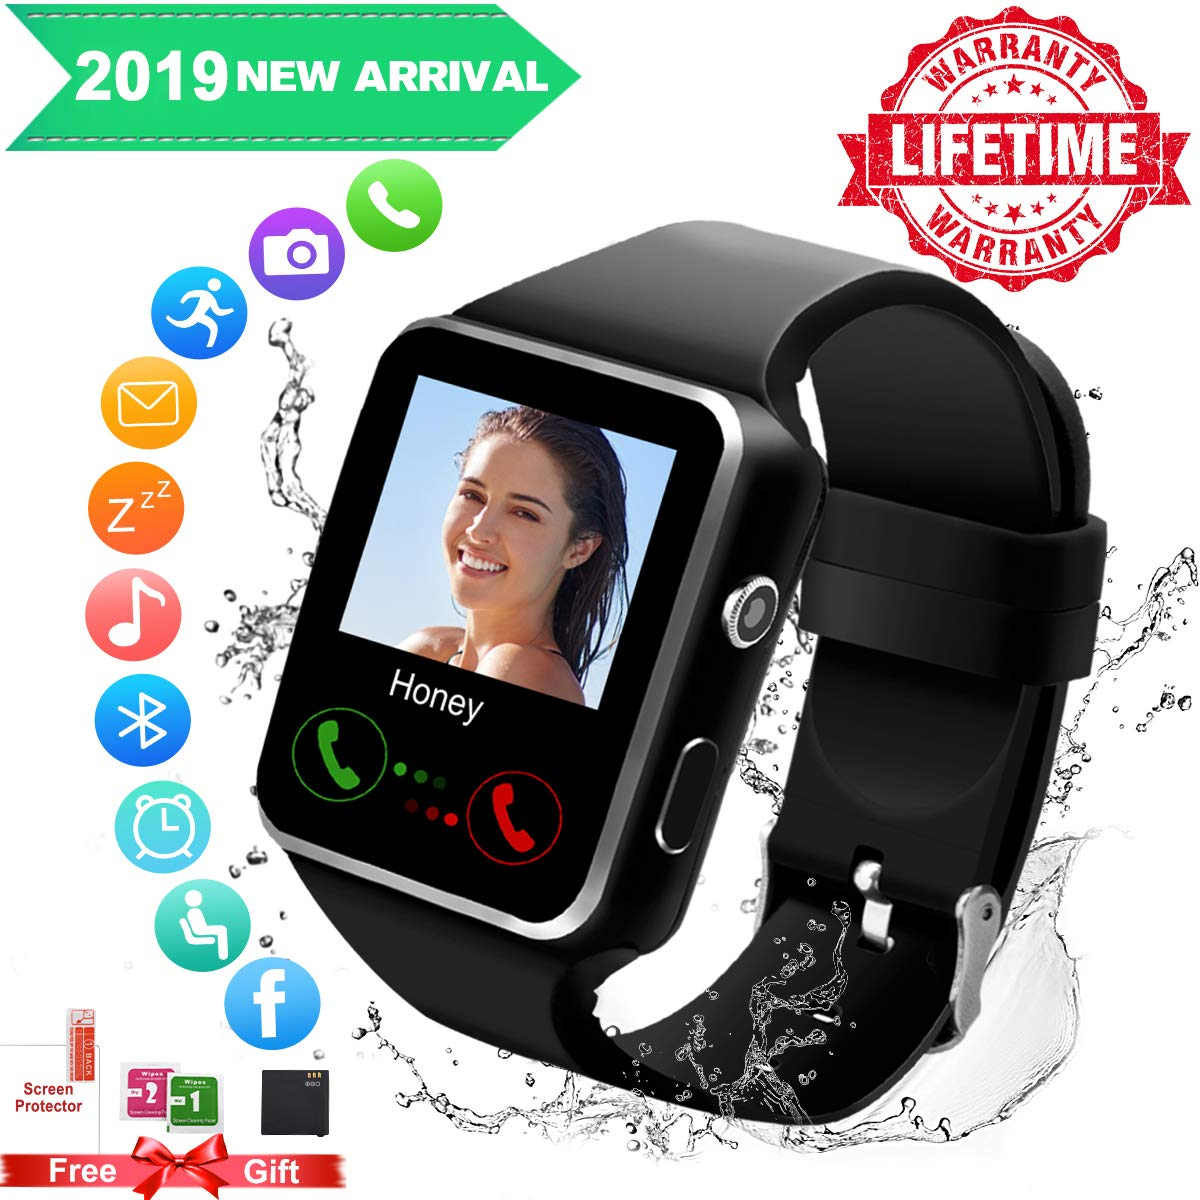 Android Smart Watch for Women Men, 2019 Bluetooth Smartwatch Smart Watches Touchscreen with Camera, Cell Phone Watch with SIM Card Slot Compatible Android Samsung iOS Phones XS 8 7 6 Note 8 9 Adult by Topicy